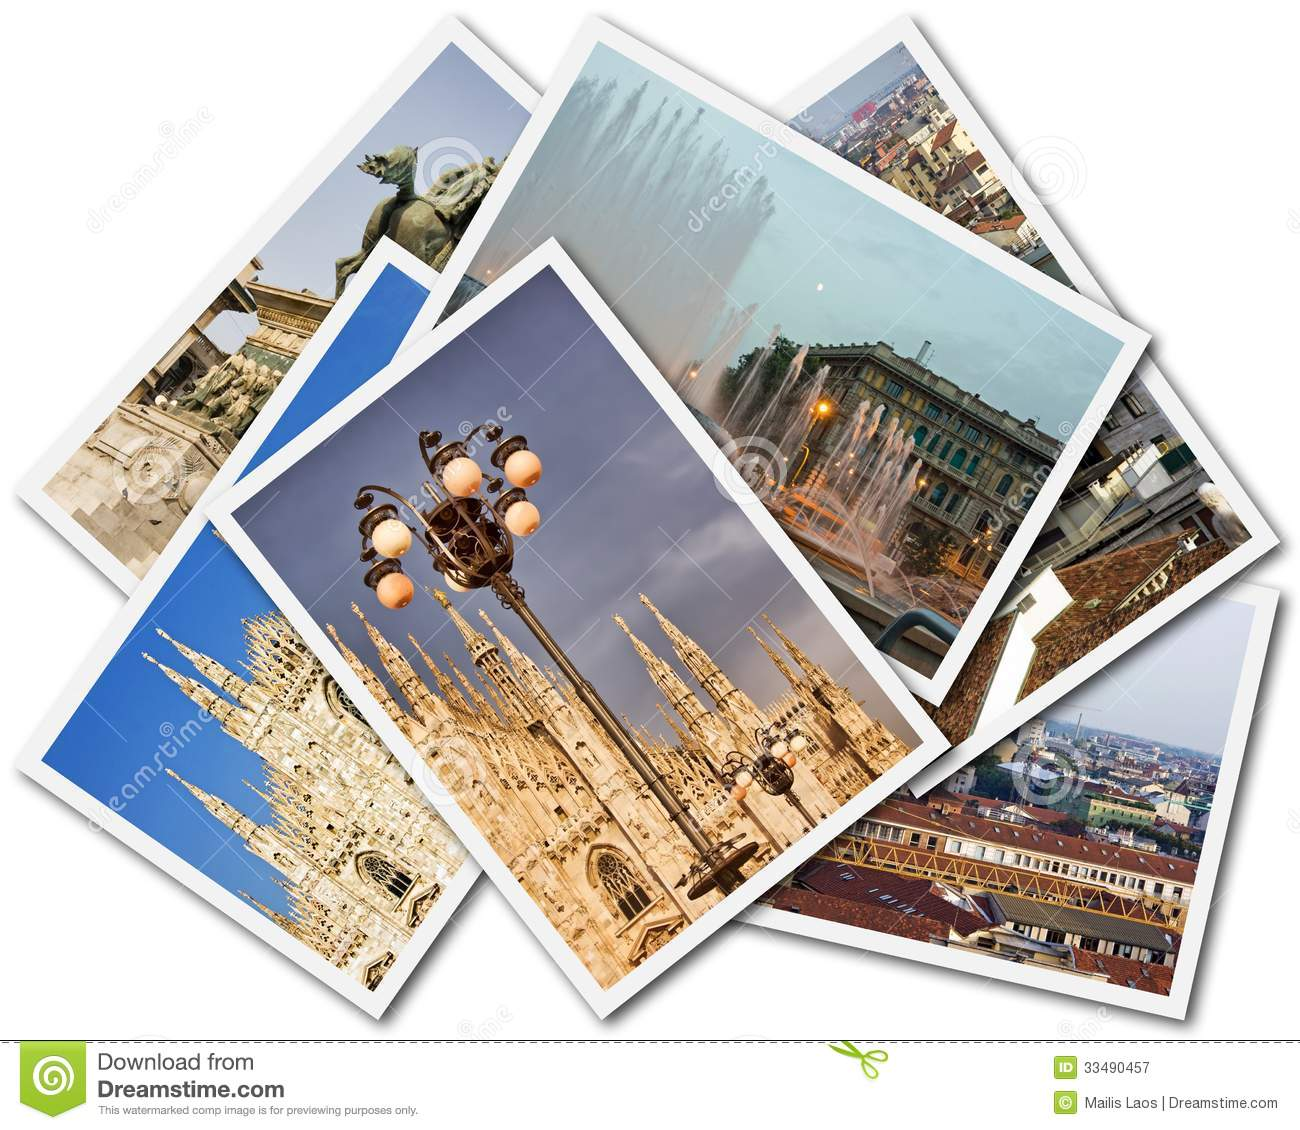 Download Milan Collage stock image. Image of artwork, cityscape - 33490457